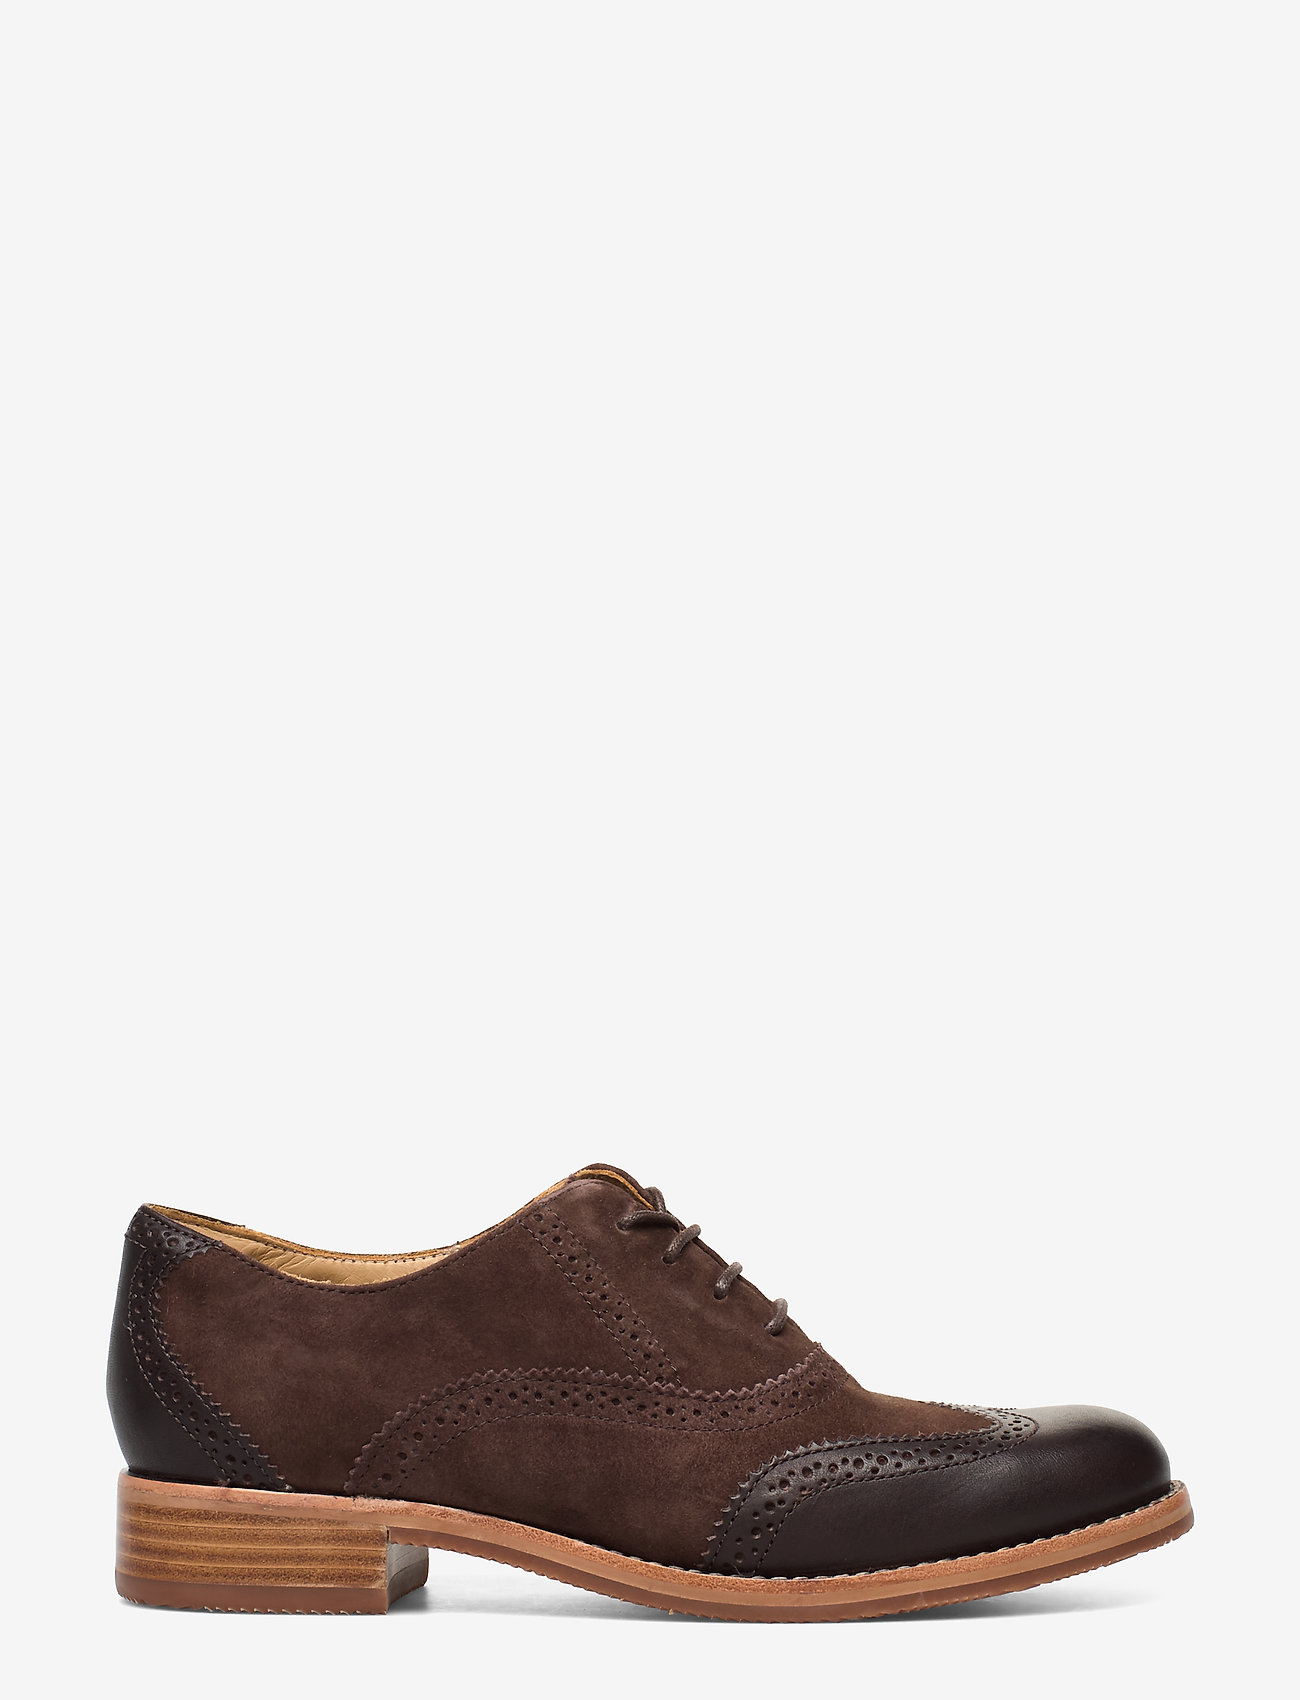 Sebago - Claremont Brouge - buty sznurowane - brown suede/leather - 1